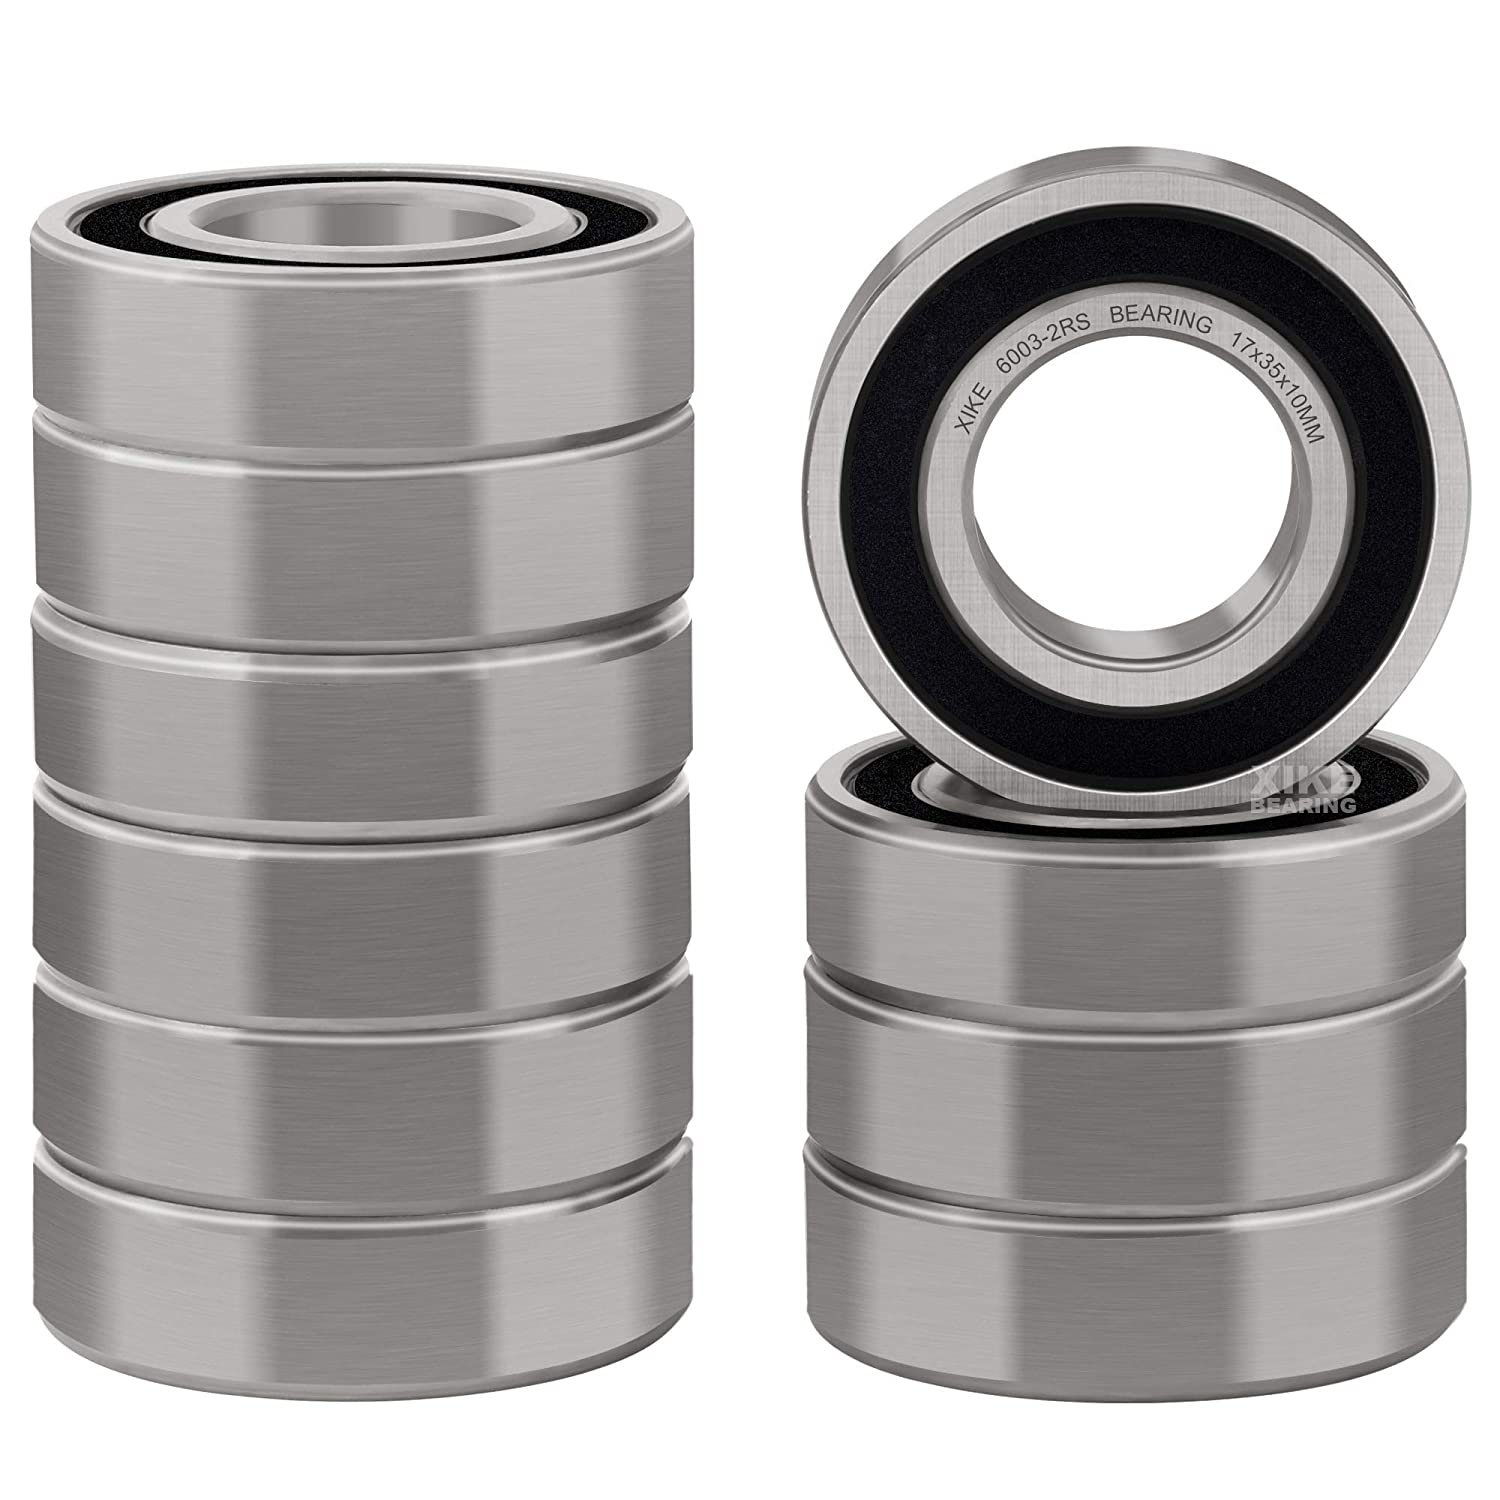 Pre-Lubricated and Stable Performance and Cost Effective TIMKEN 6203-2RS 5 Pcs Double Rubber Seal Bearings 17x40x12mm Deep Groove Ball Bearings.